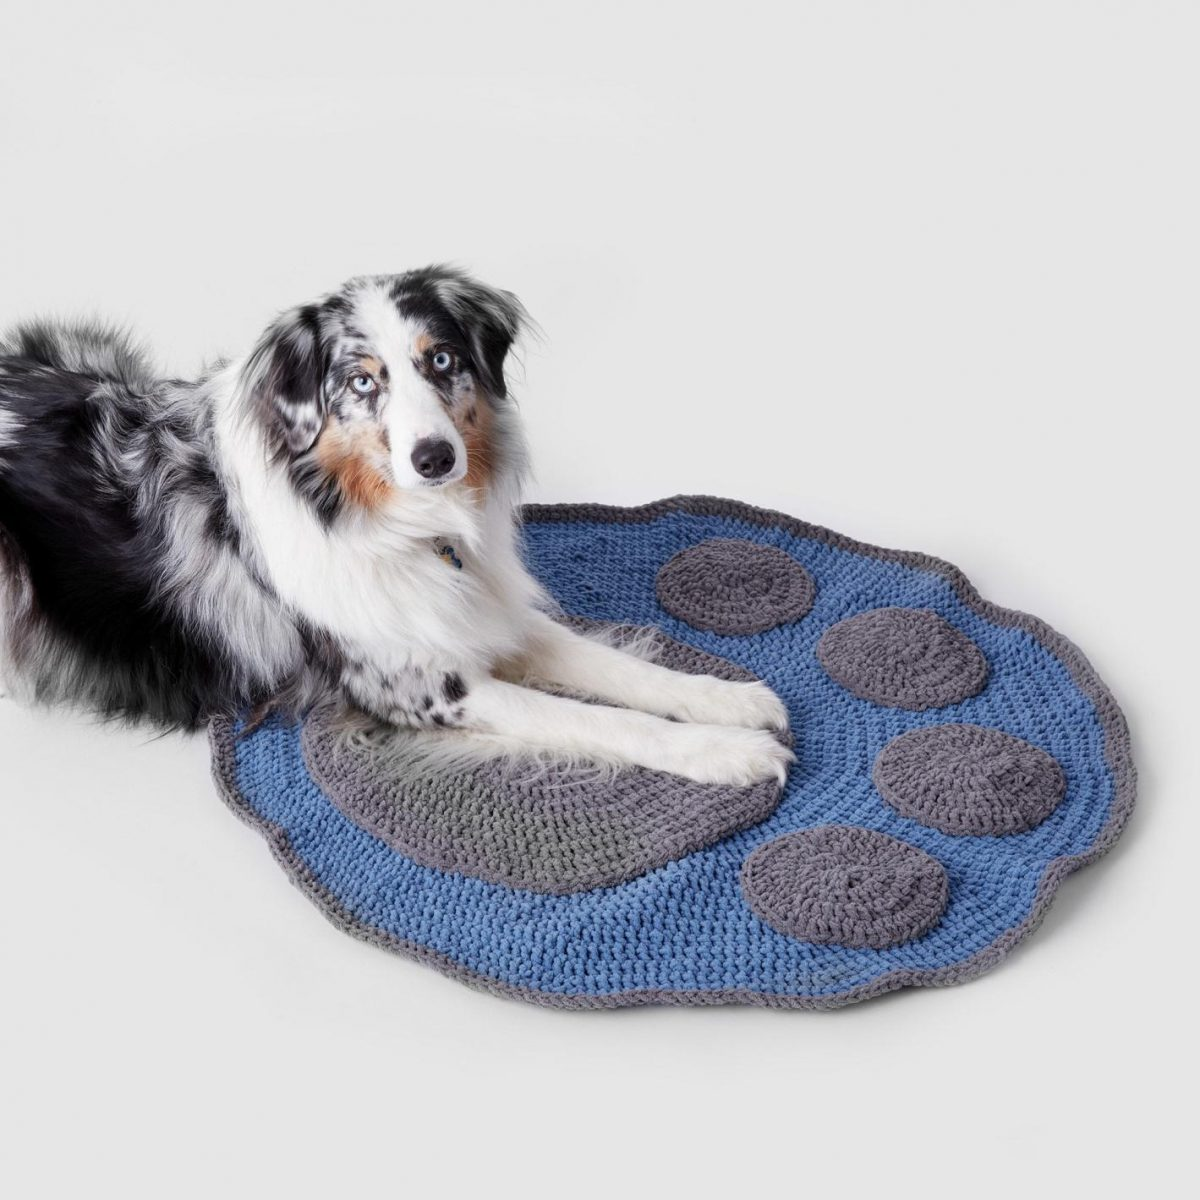 Make-It-Yourself Yarn Crafts for Your Pet Pooch